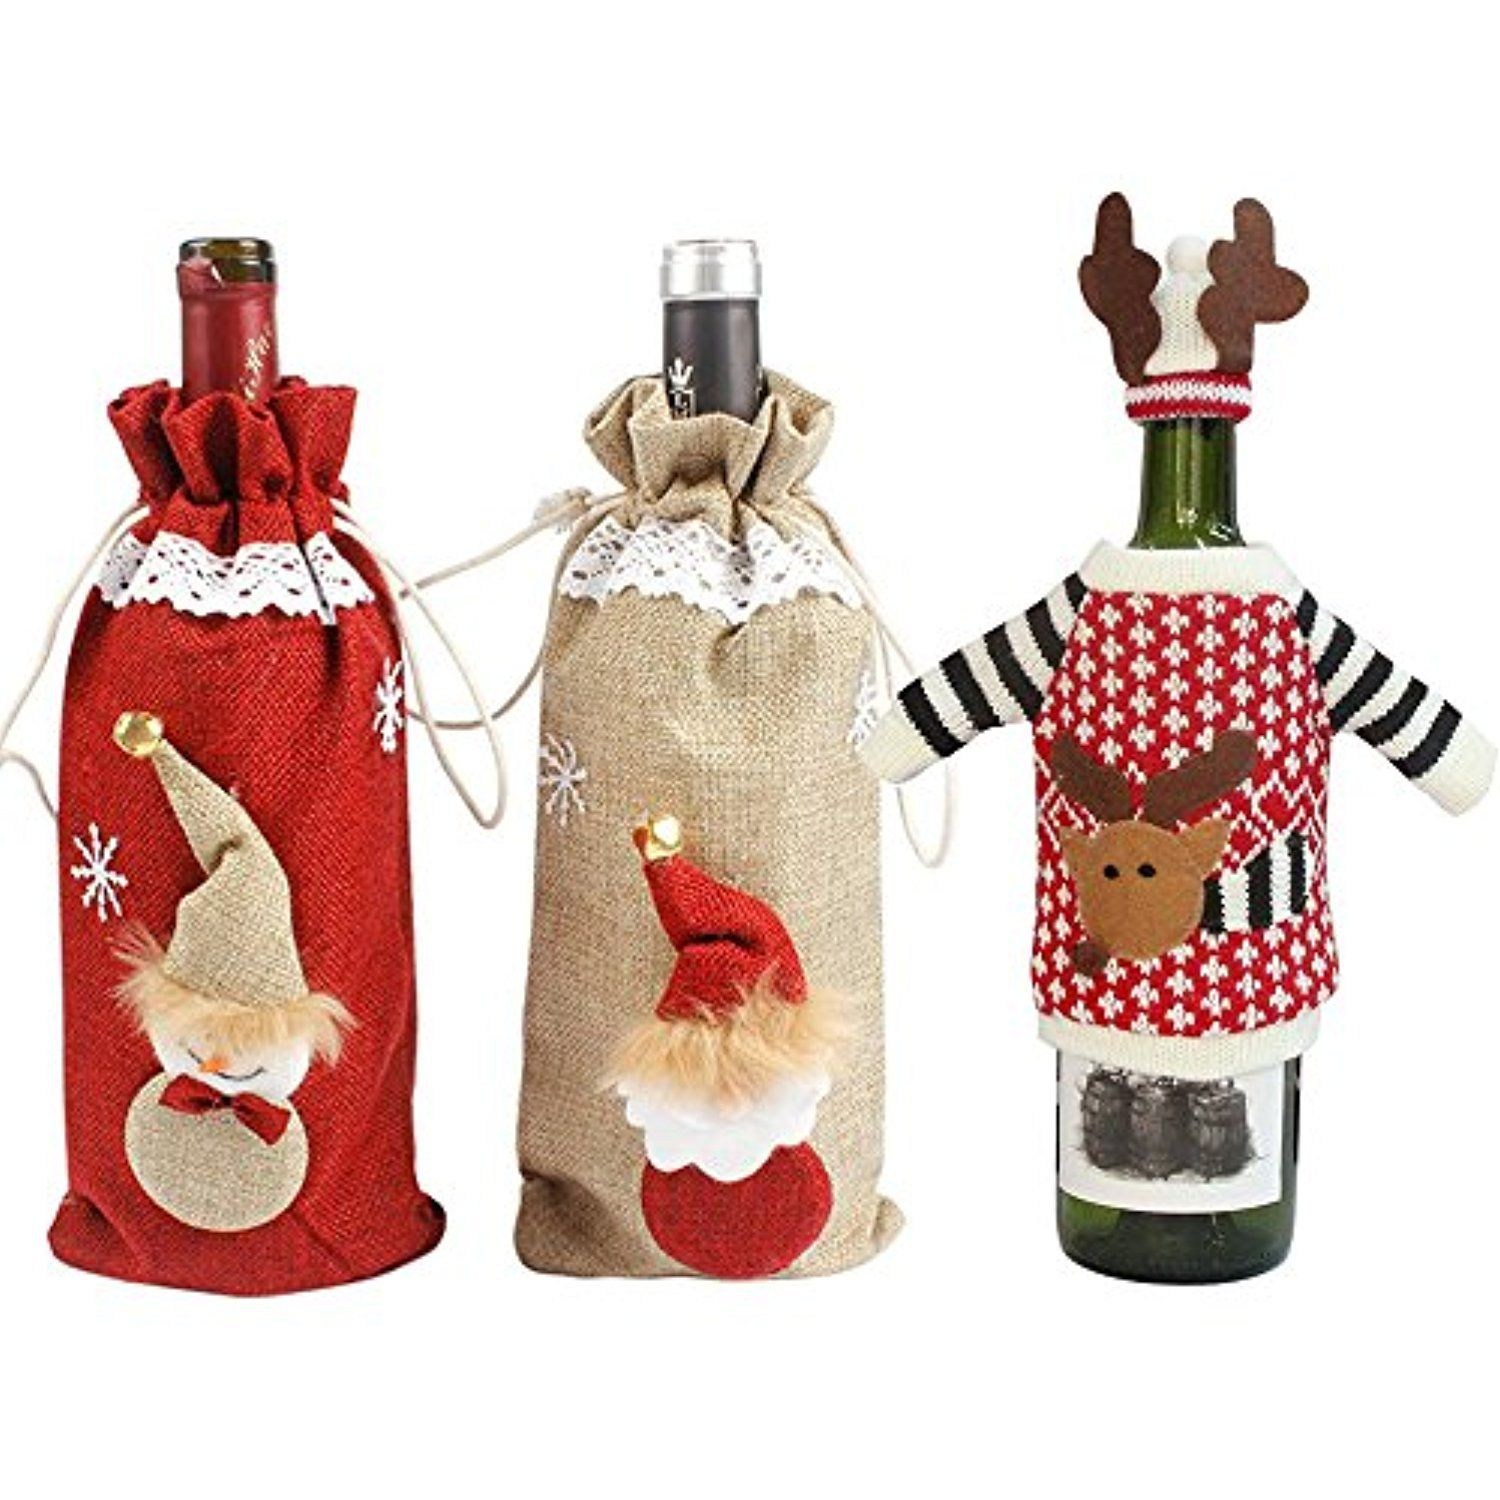 Christmas Red Wine Bottle Cover Bag Champagne Bottle Organizer Xmas Decoration Christm With Images Dinner Table Decor Christmas Decorations Dinner Table Dinner Party Gifts